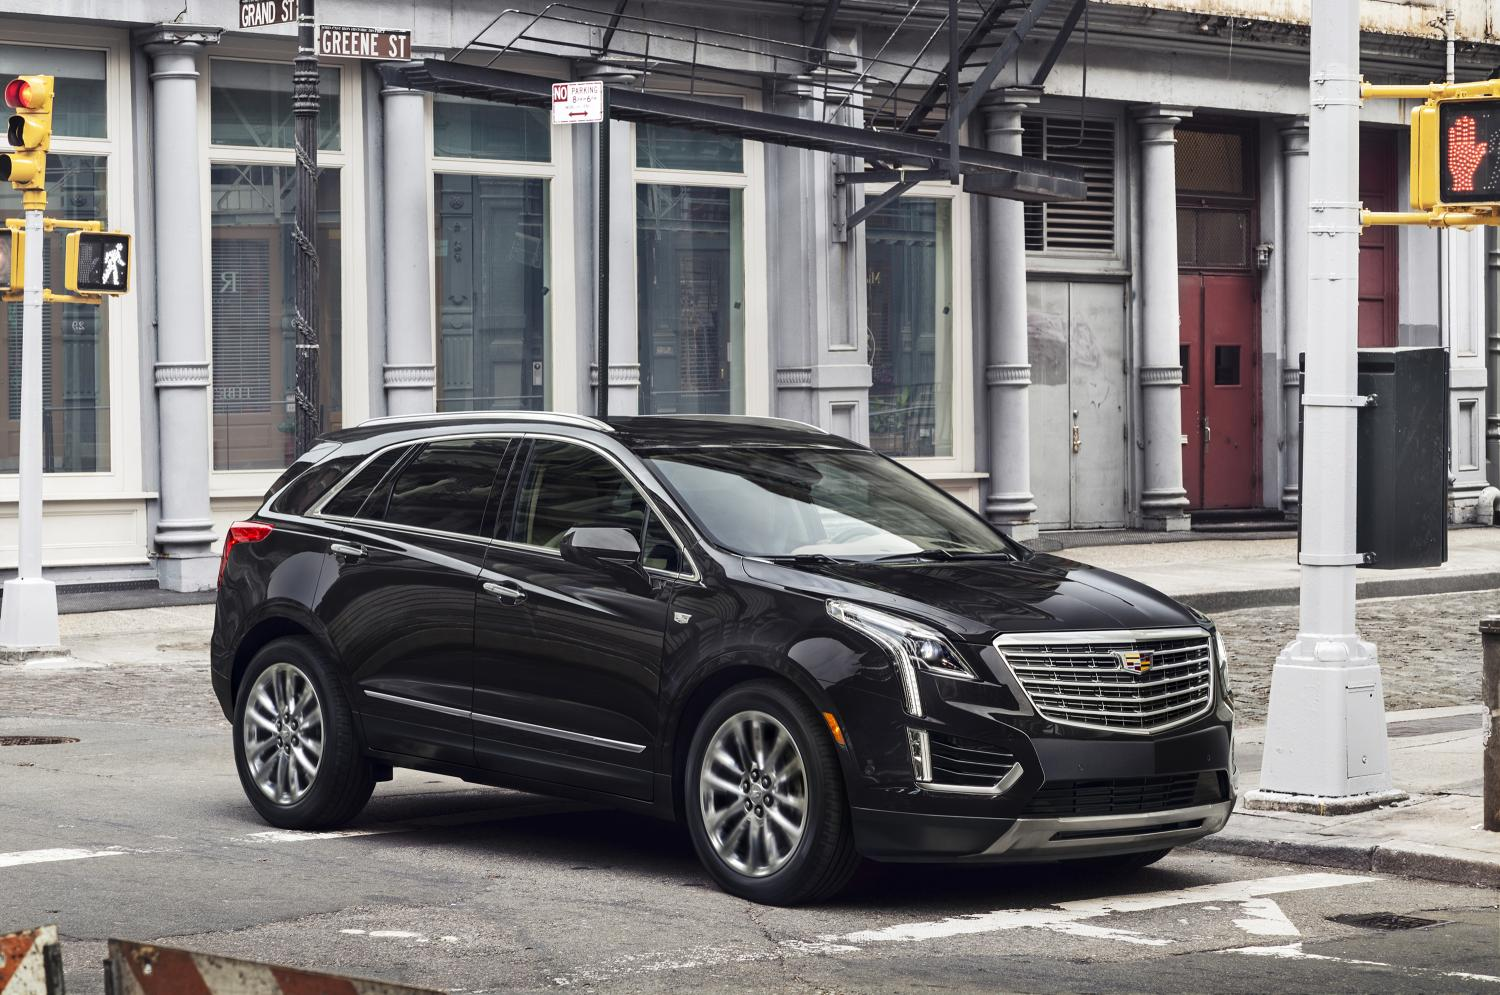 2017 Cadillac Xt5 Crossover Priced At 39 990 In The Us Arrives In